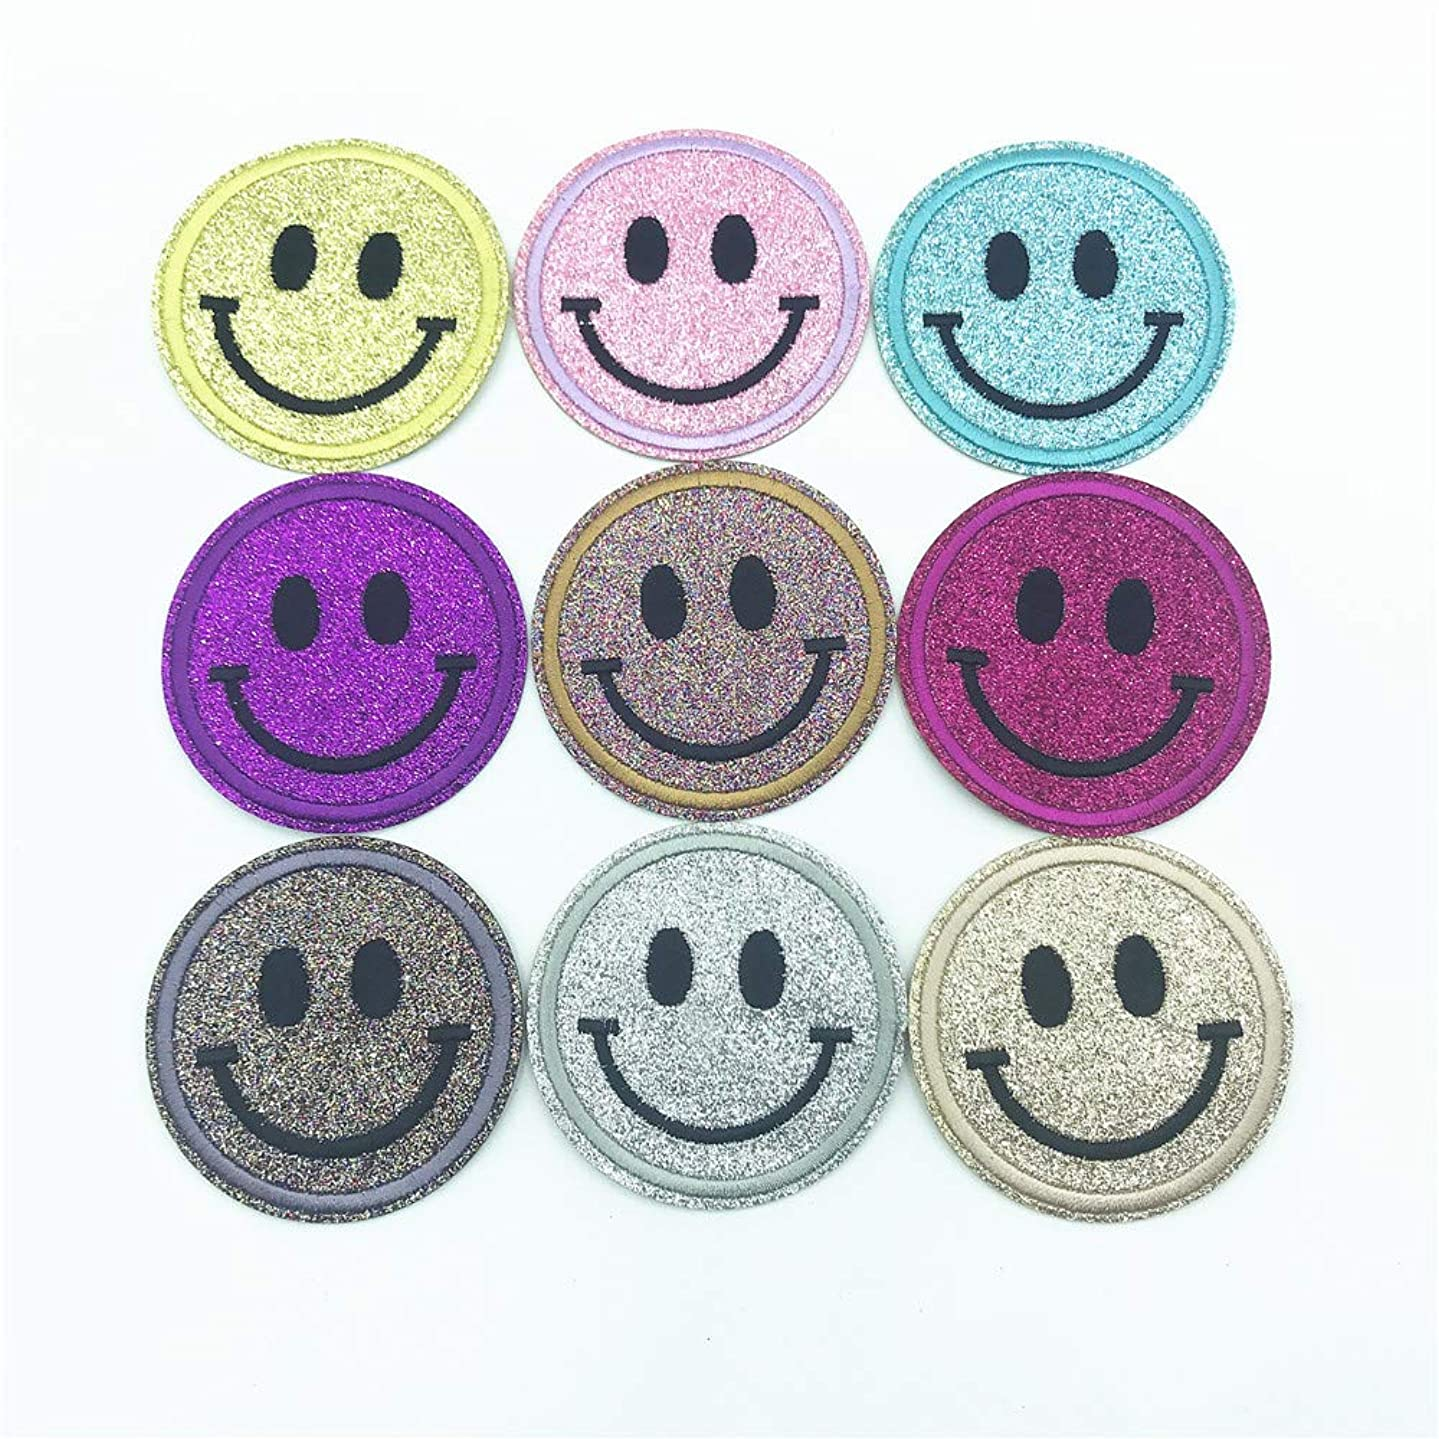 Smile Face Shiny Patches Circle Cartoon Stickers DIY Embroidery Clothes Decoration Sewing Iron Patch 2.52x2.52 Inch of 9pcs